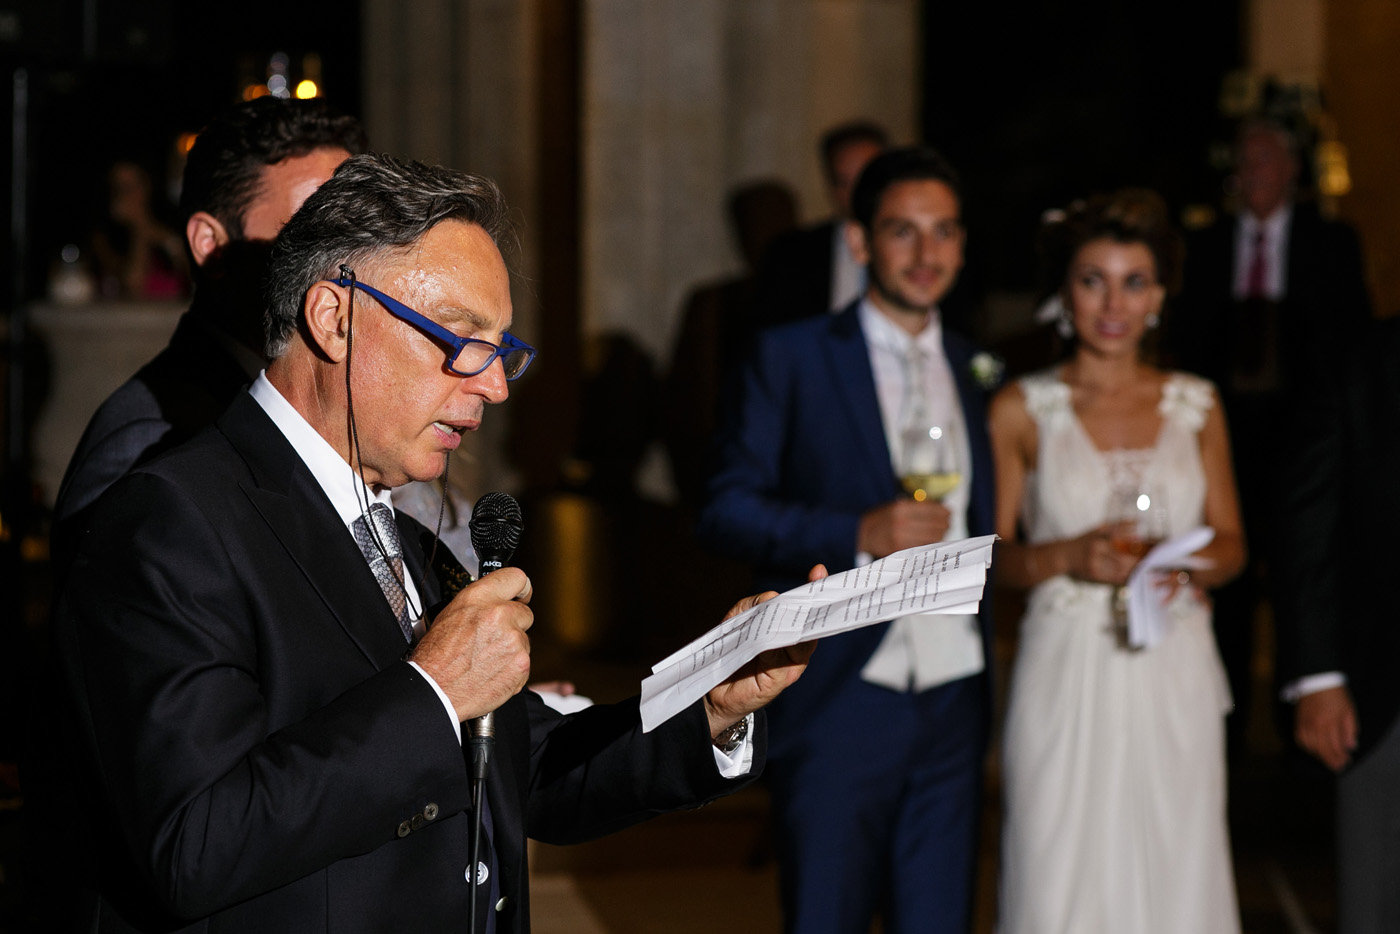 View More: http://joeewong.pass.us/francesa_antonio_matrimonio